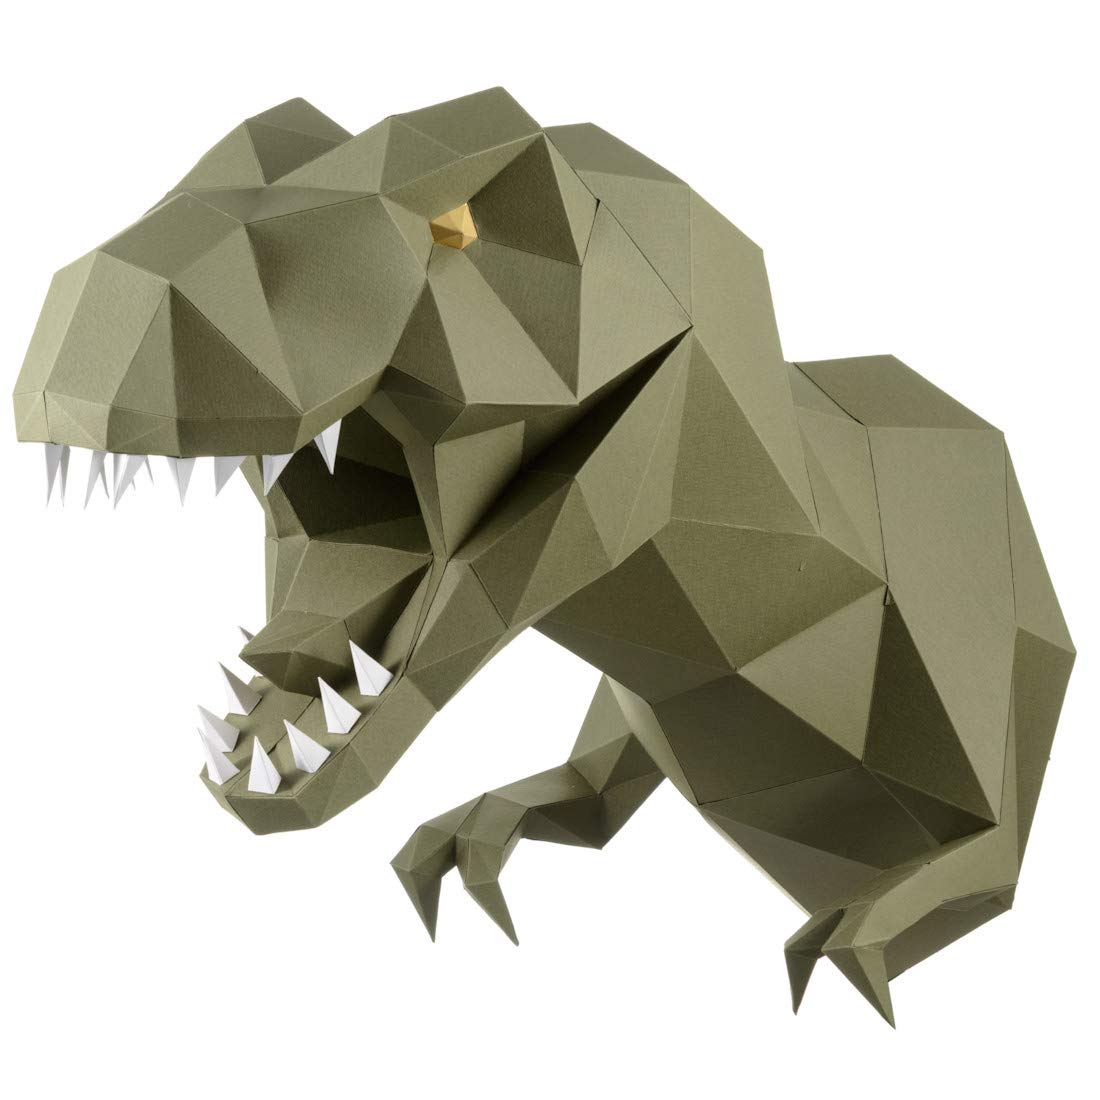 Paperraz 3D Dinosaur Dino Head Animal Building Trophy Puzzle Low Poly  PaperCraft Kit for Adults & Teens - NO Scissors Needed